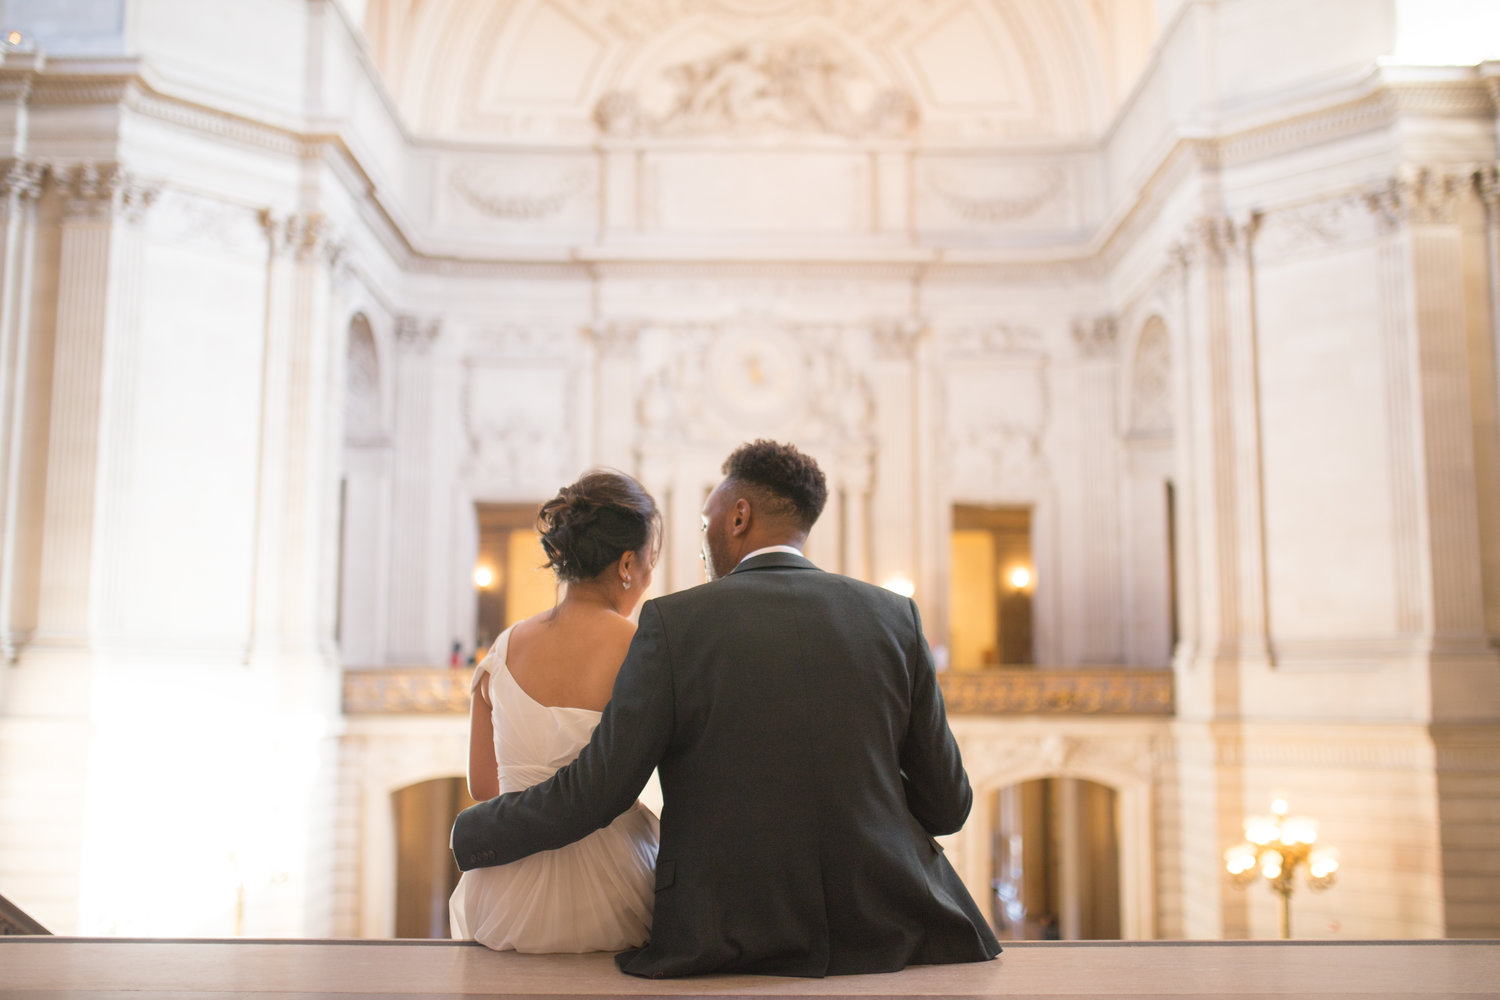 Upon arrival, we had a couple of minutes to capture some special moments before their ceremony. There is nothing like natural light to capture just that.